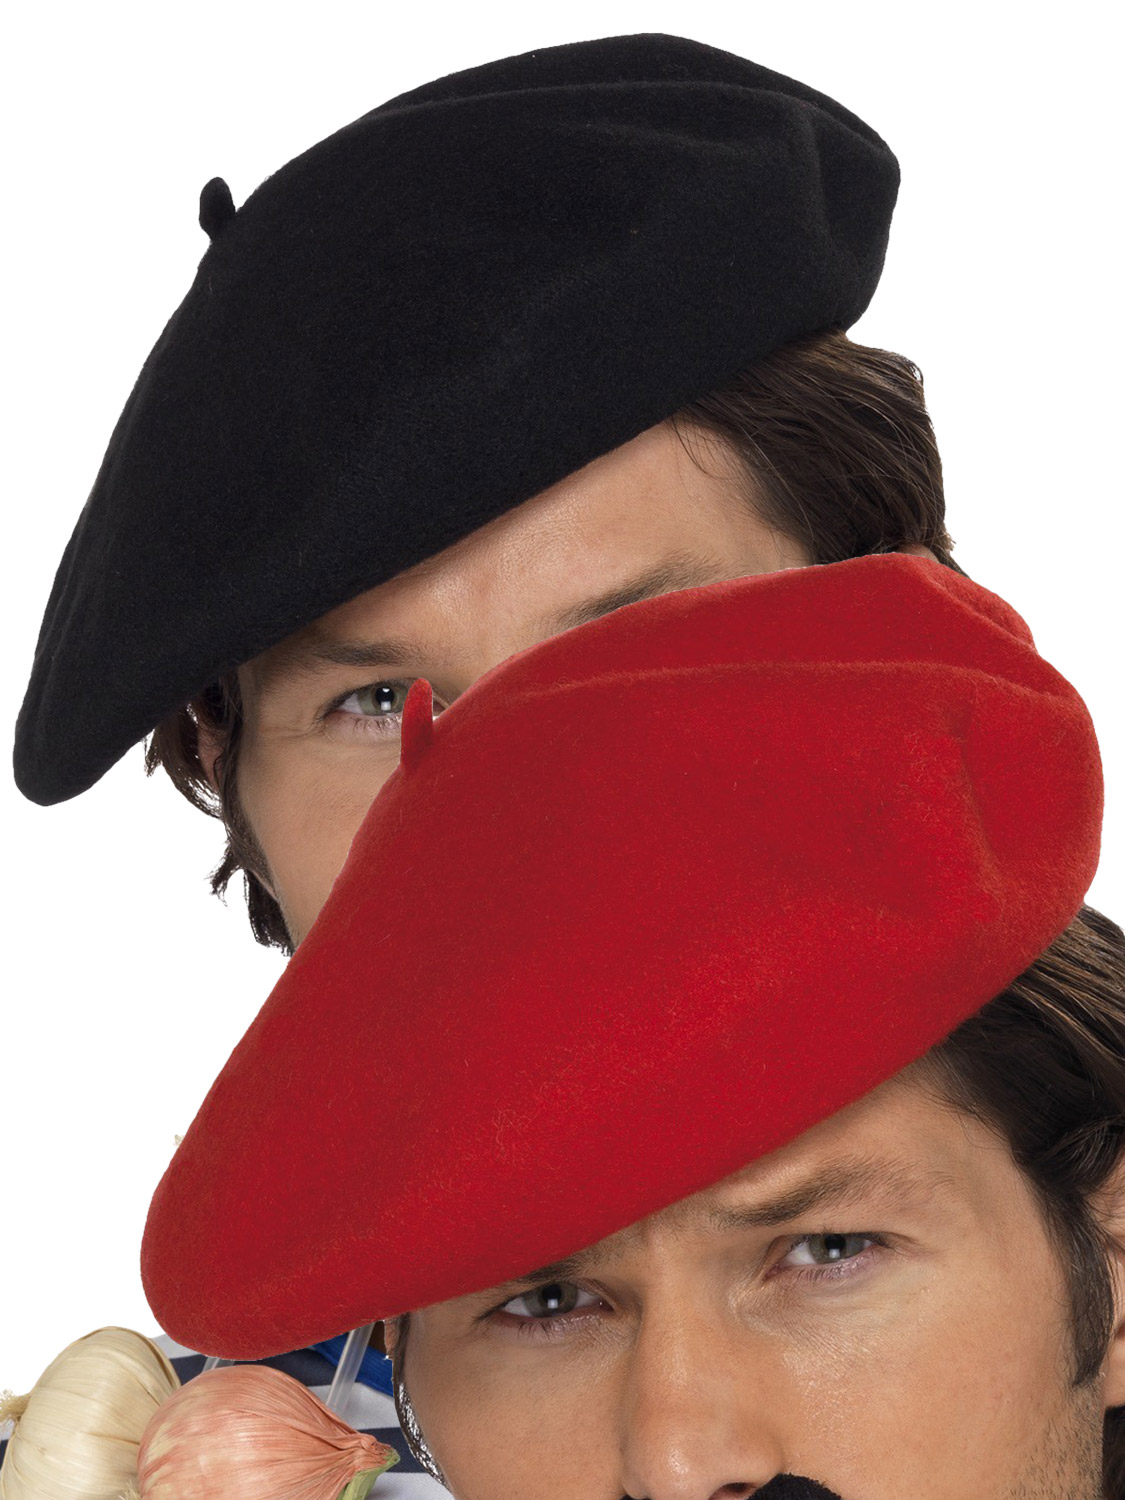 d5f8d43f9b6 Details about Adults French Beret Mens Ladies Black Red Mime Artist Hat  Fancy Dress Accessory